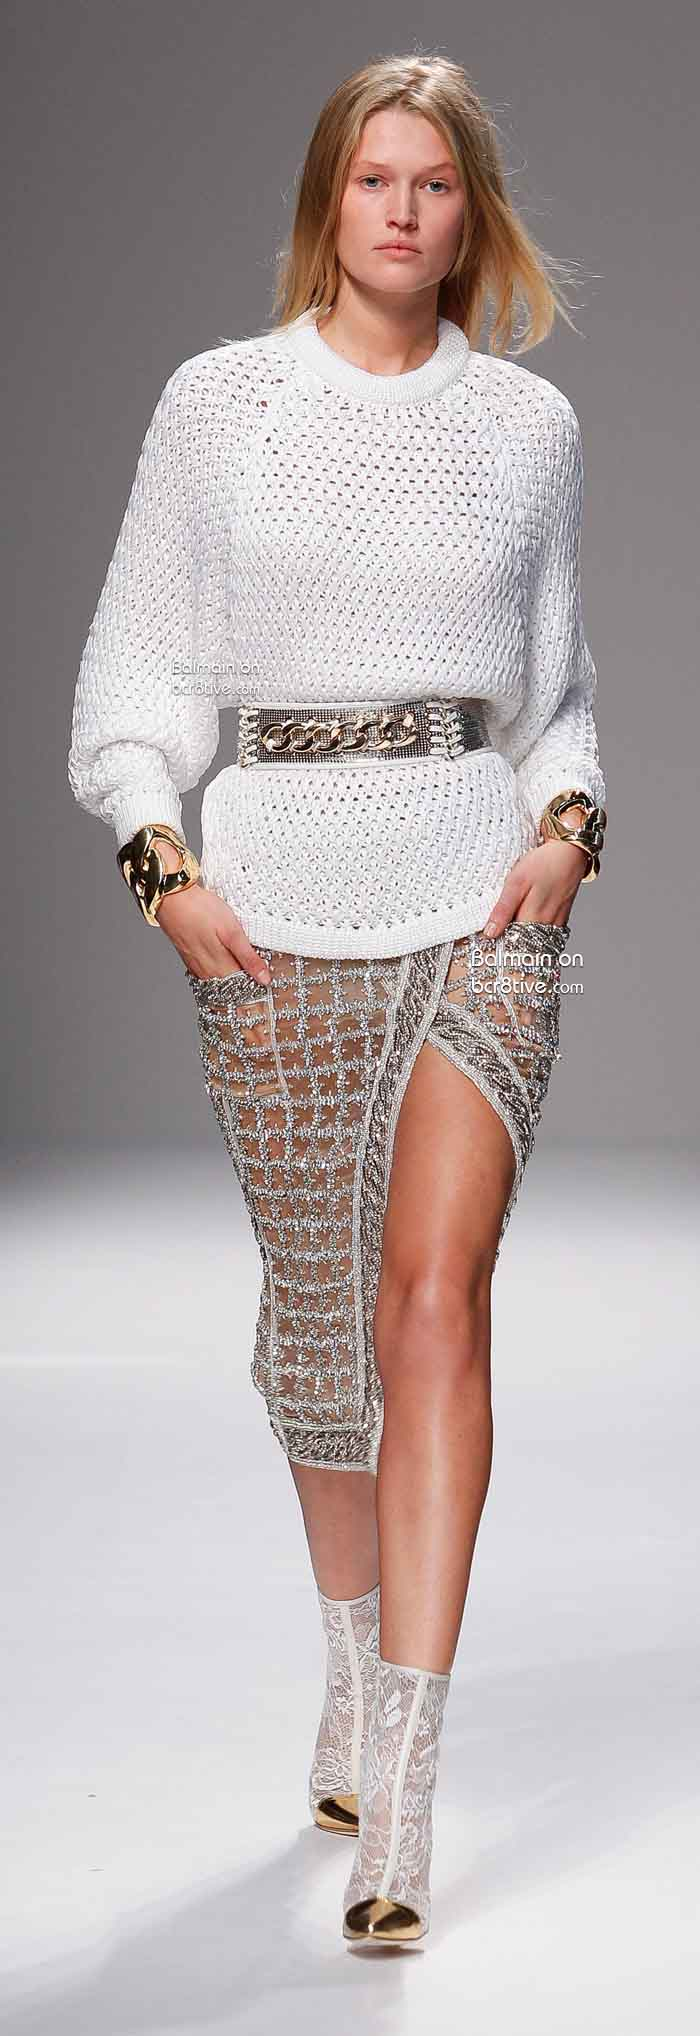 Balmain Spring 2014 Paris Fashion Week